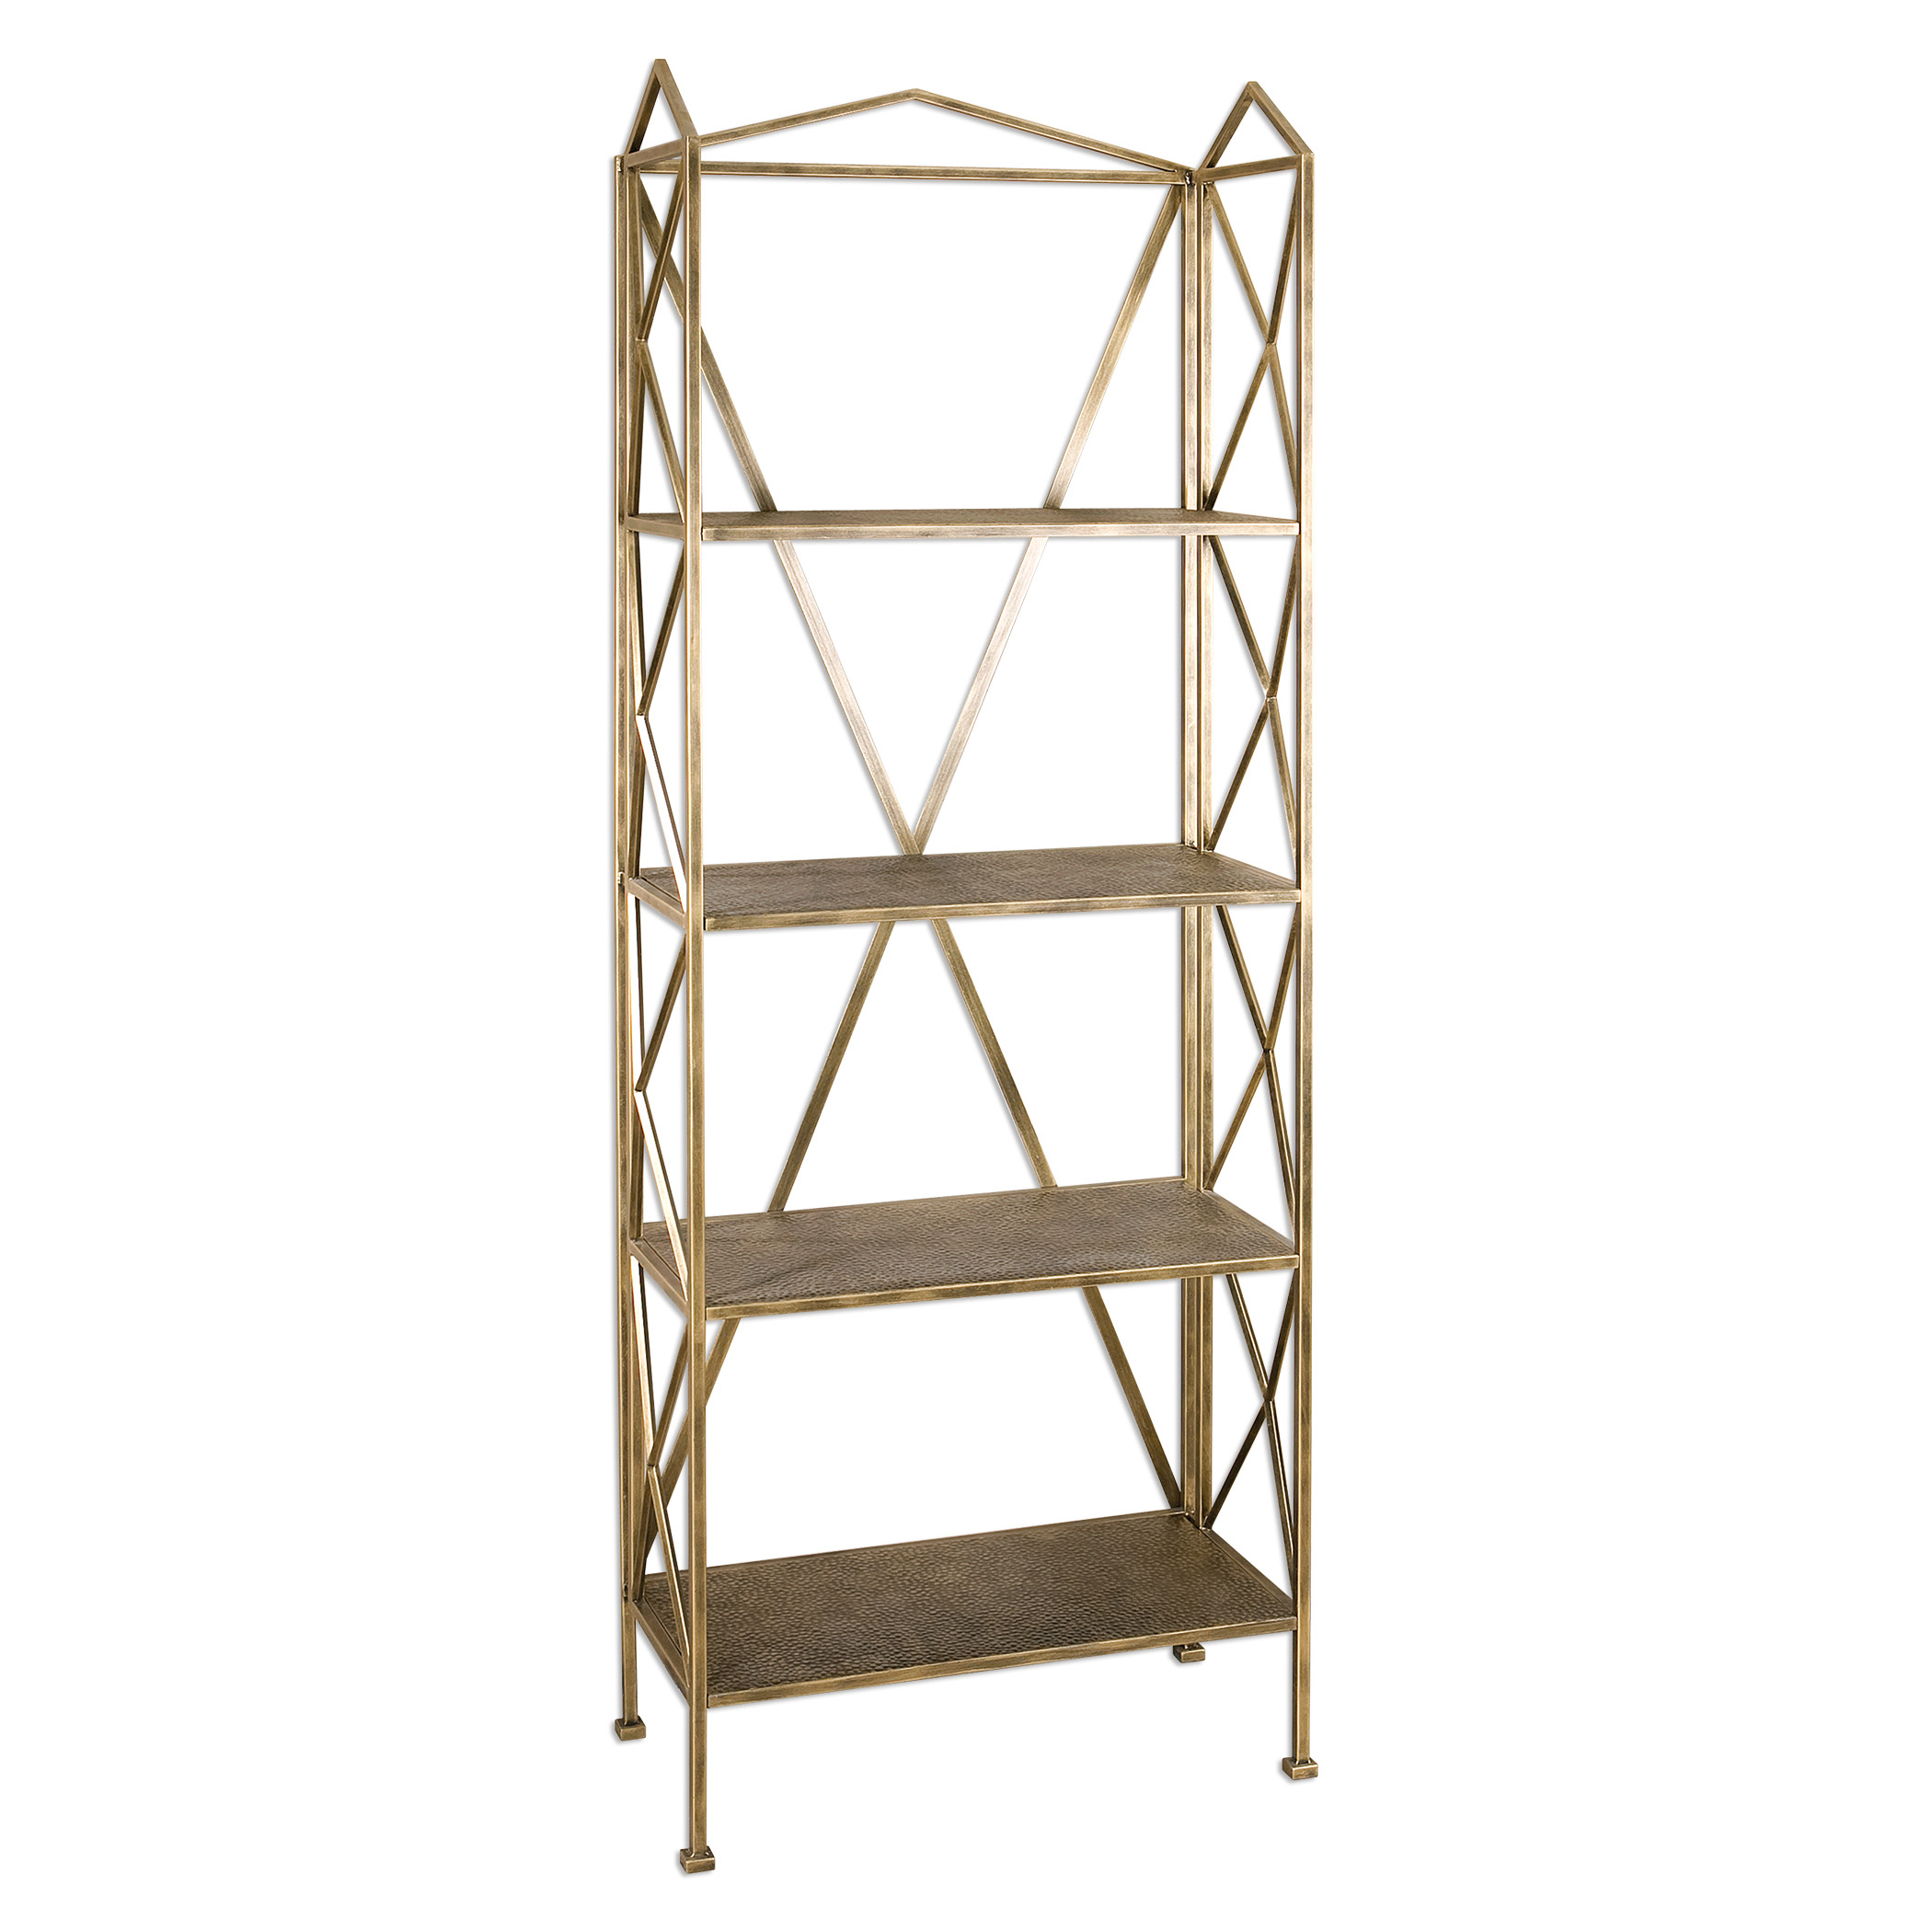 Uttermost Accent Furniture Yulia Antique Gold Etagere - Item Number: 24587